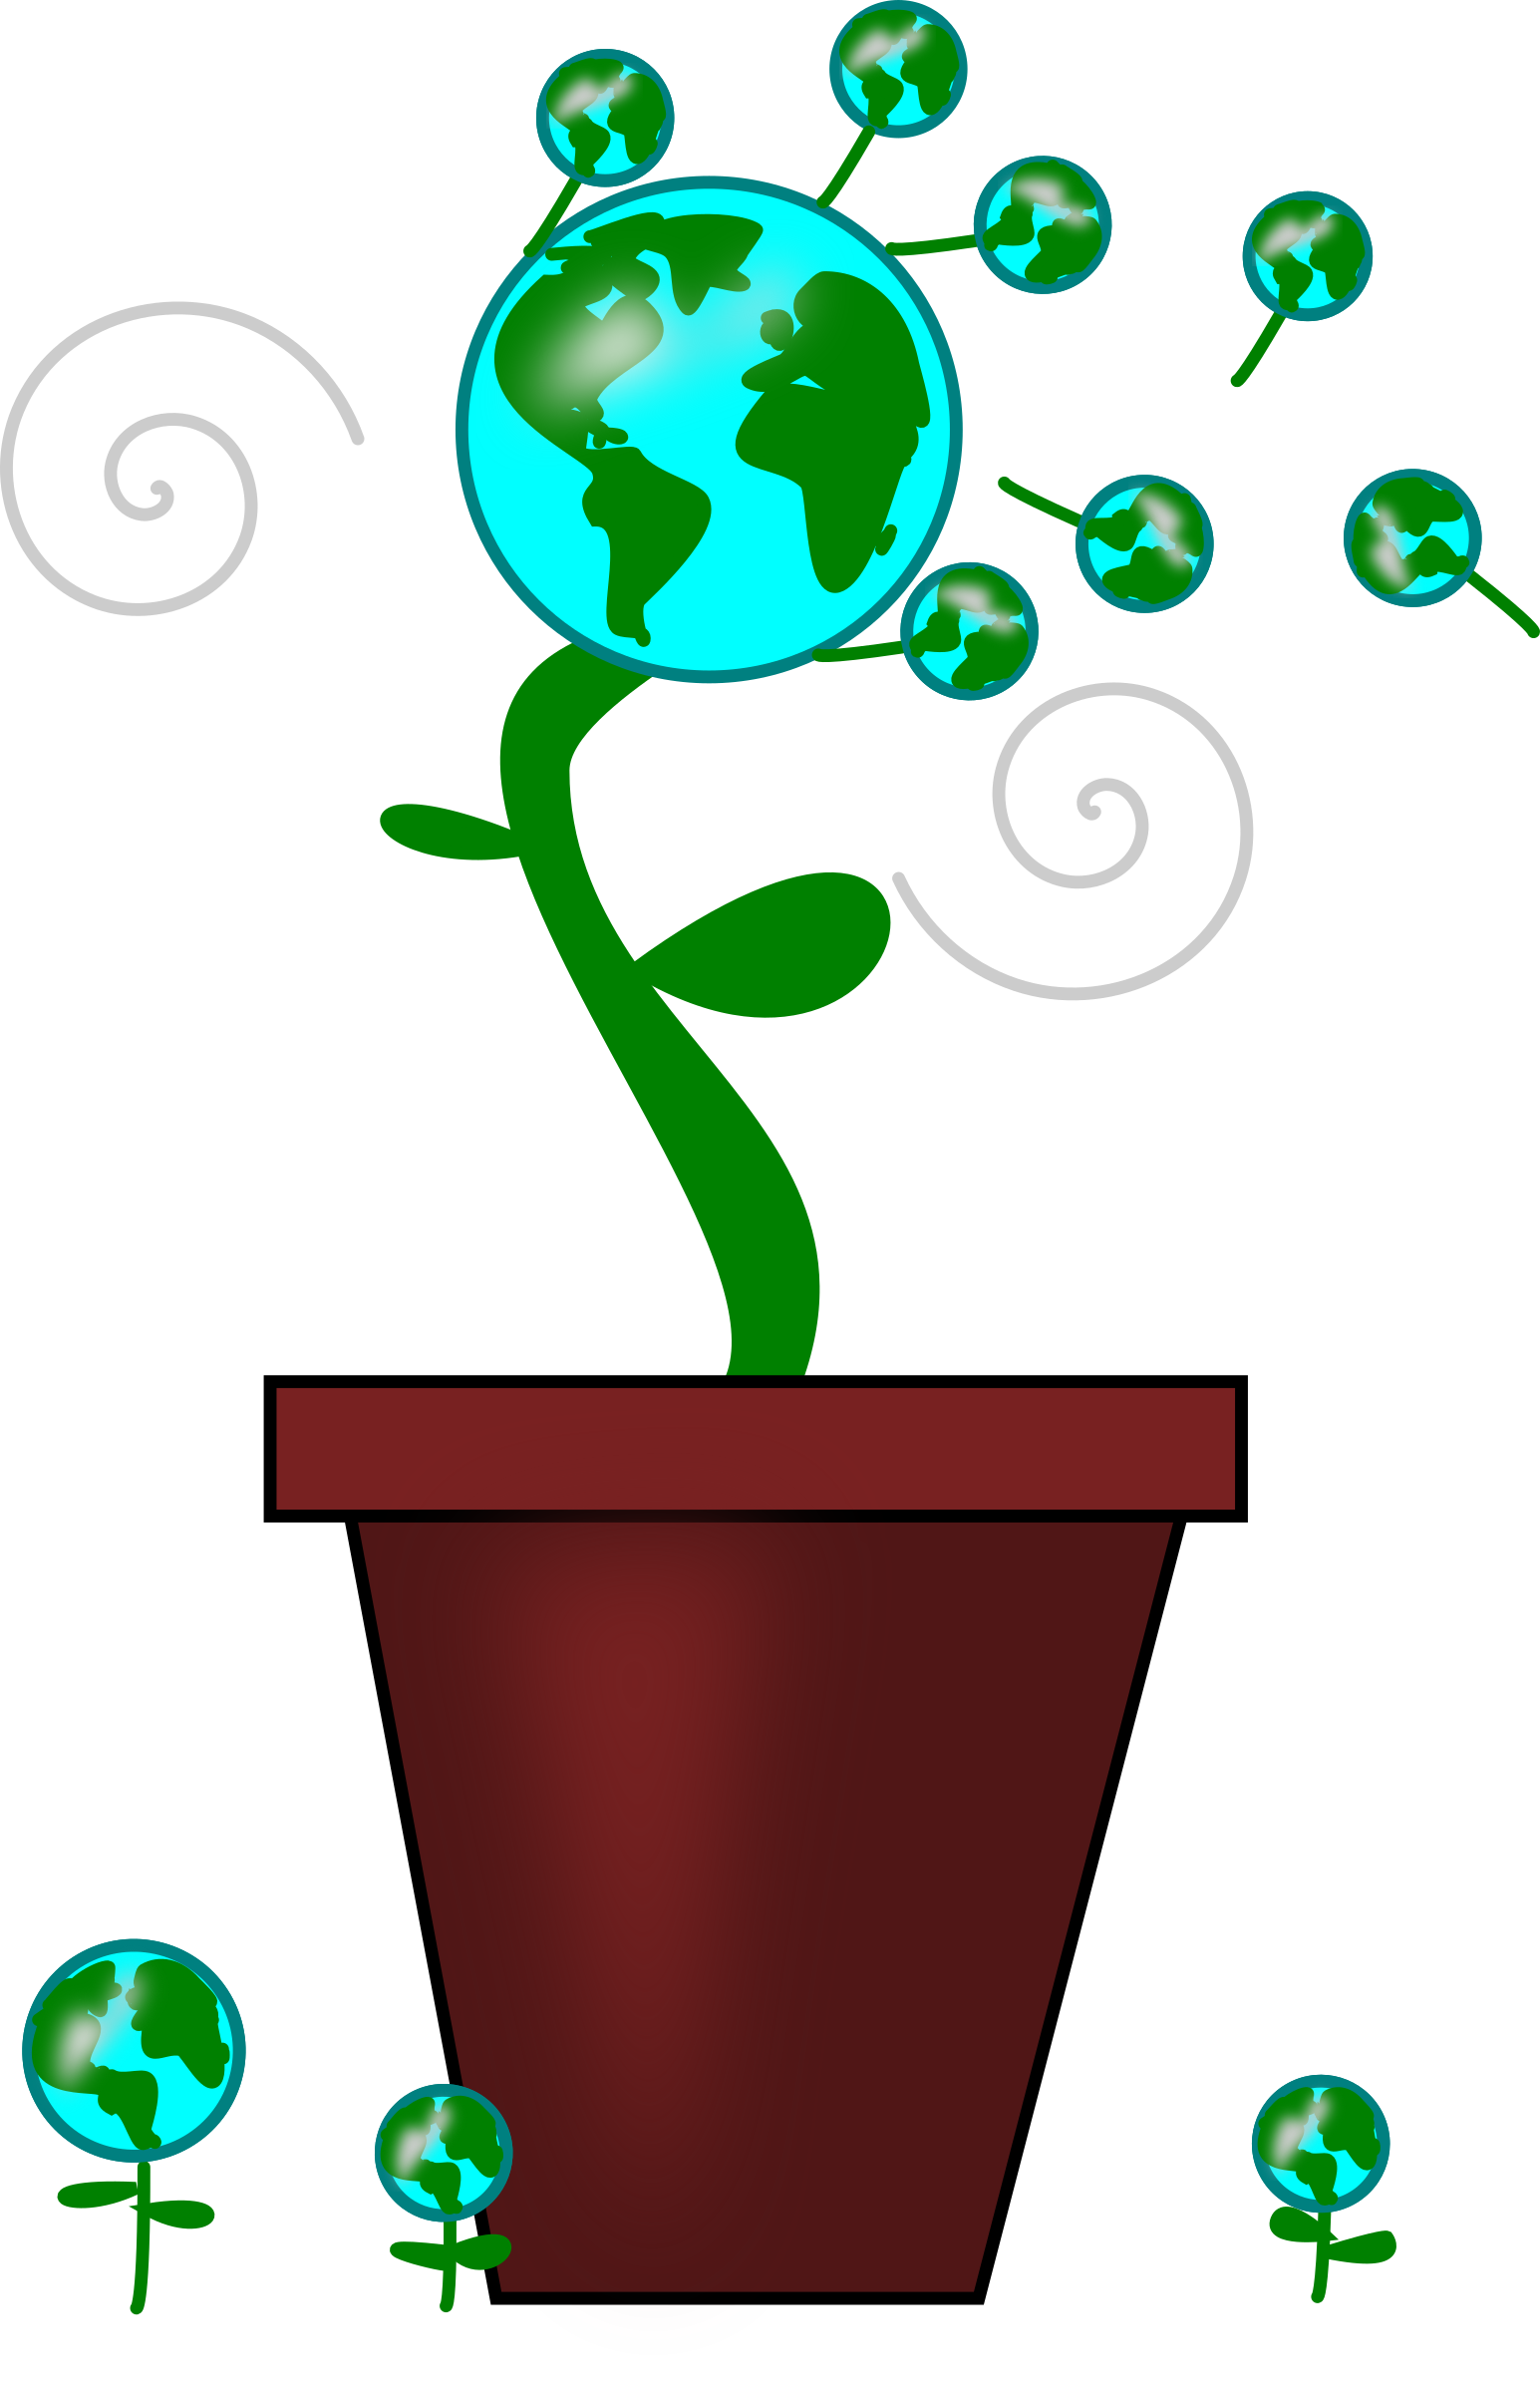 Earth icons png free. Dandelion clipart svg